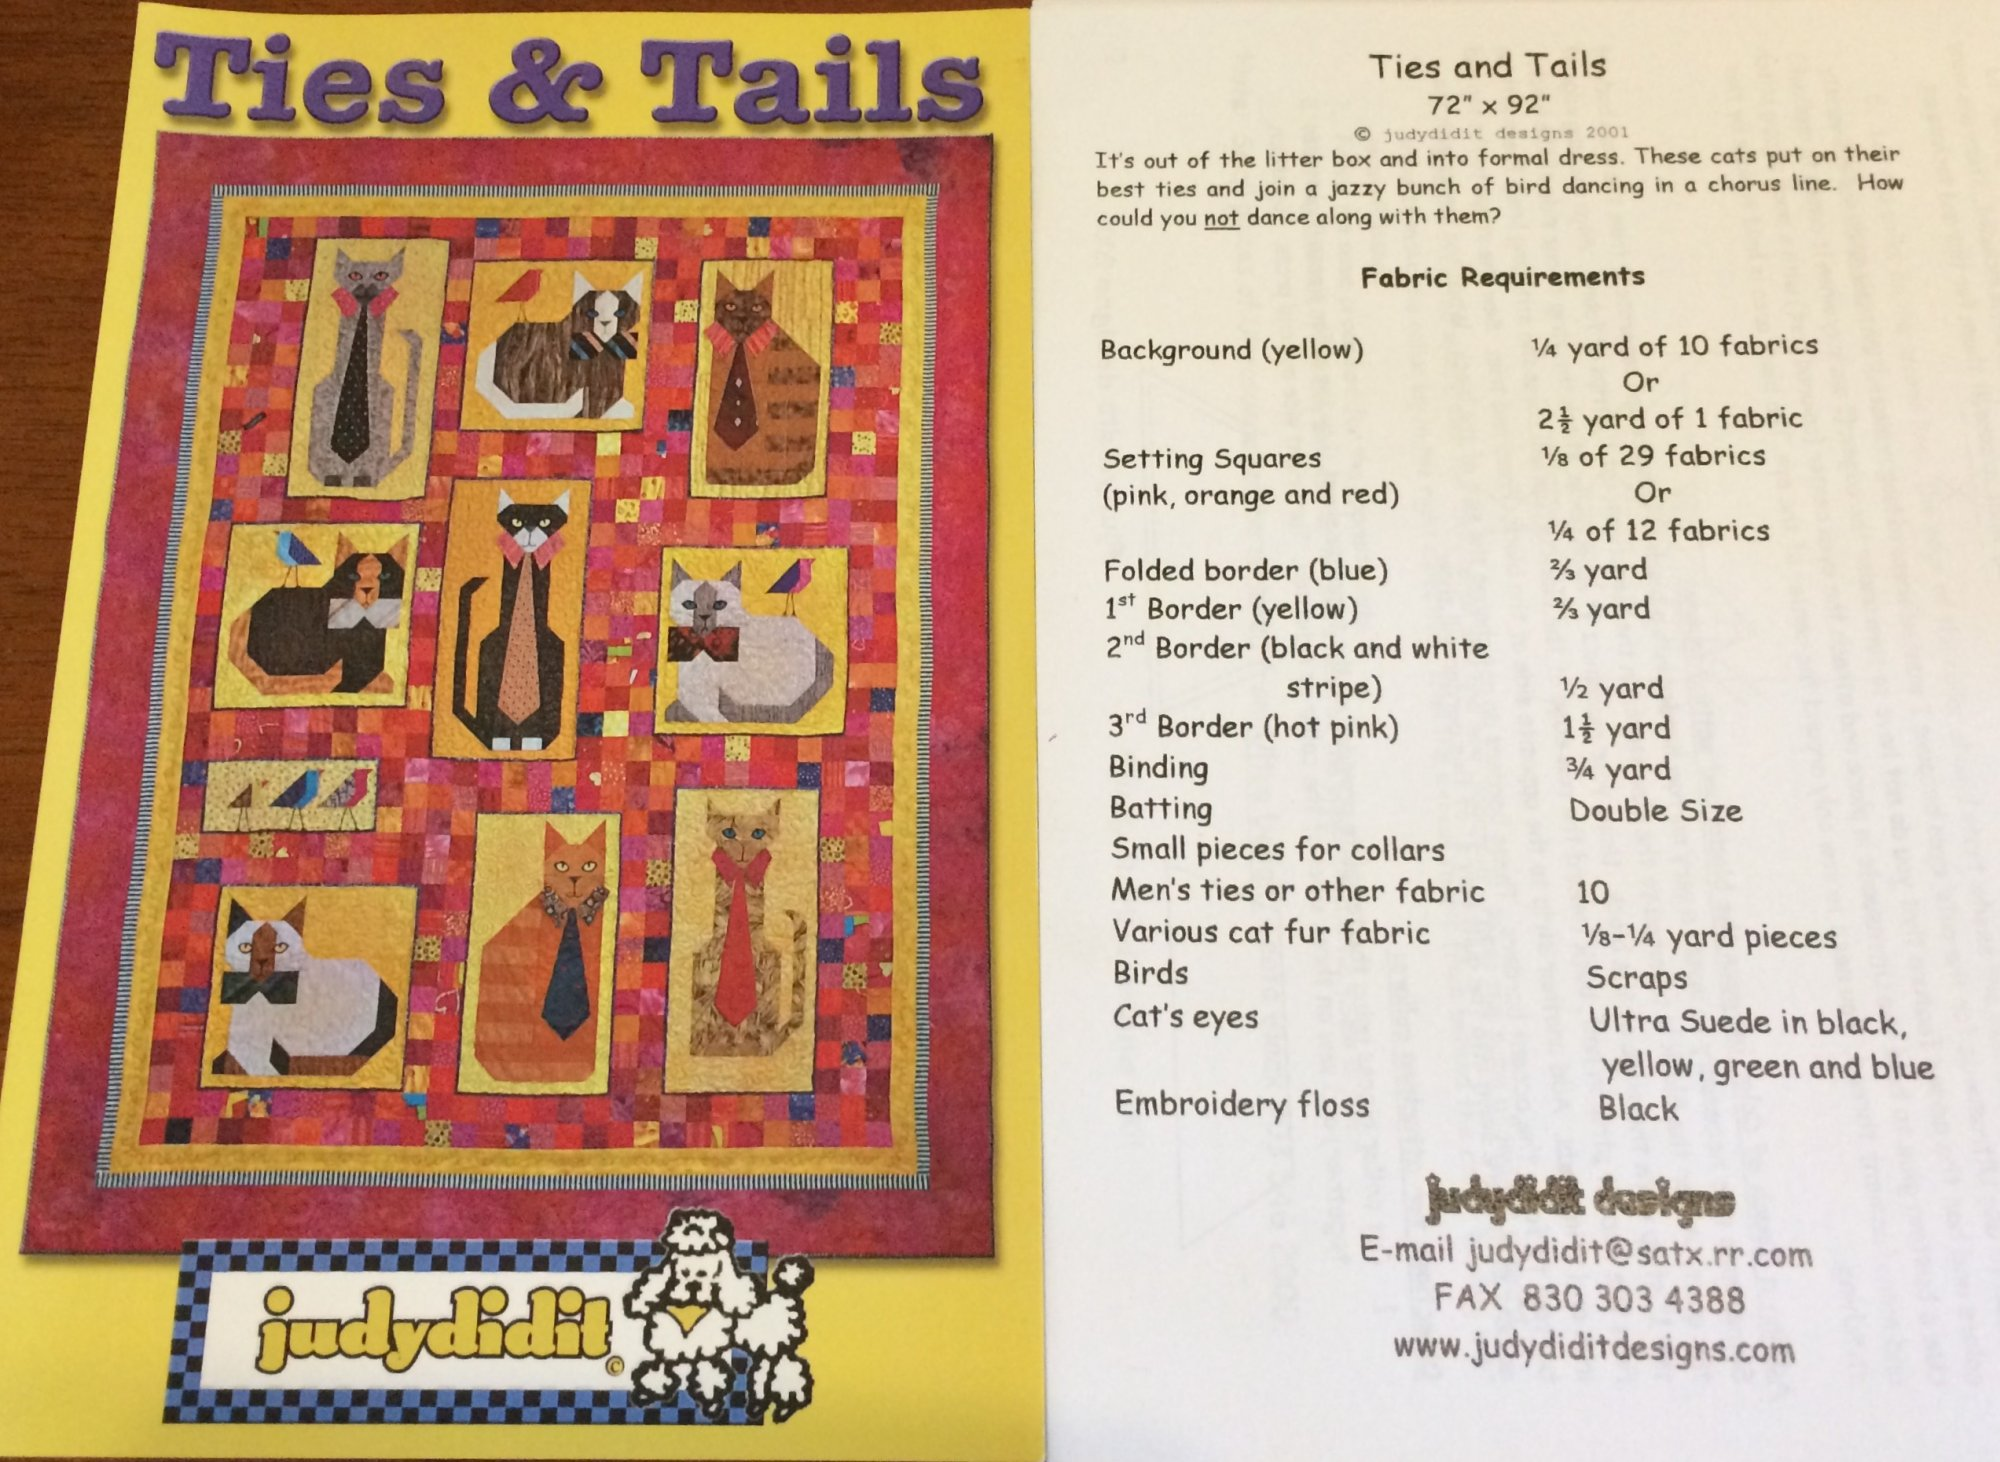 Ties & Tails by Judydidit Designs